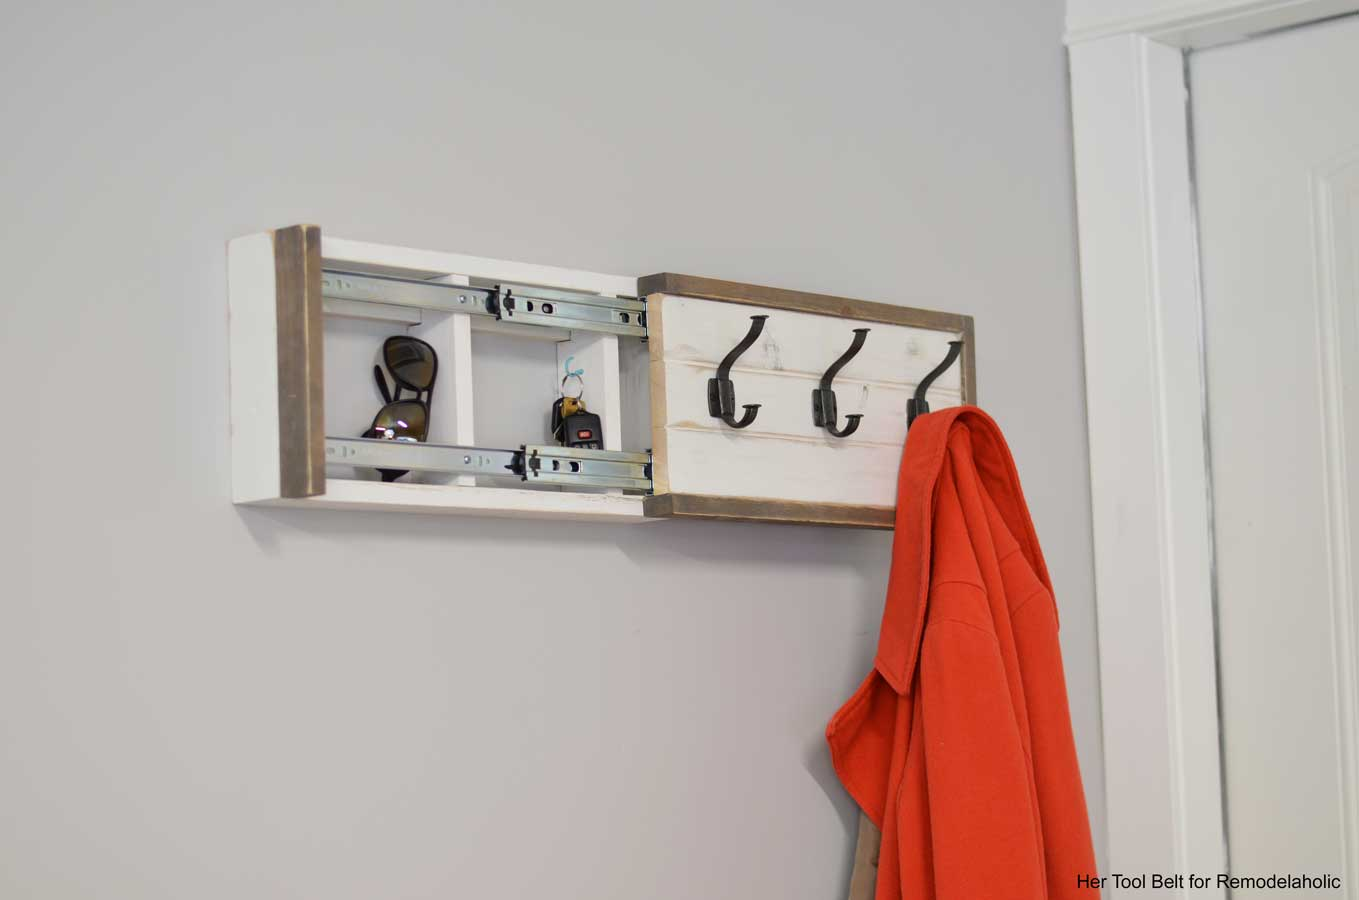 Le Meilleur Remodelaholic Build A Wall Coat Rack With Hooks And Ce Mois Ci